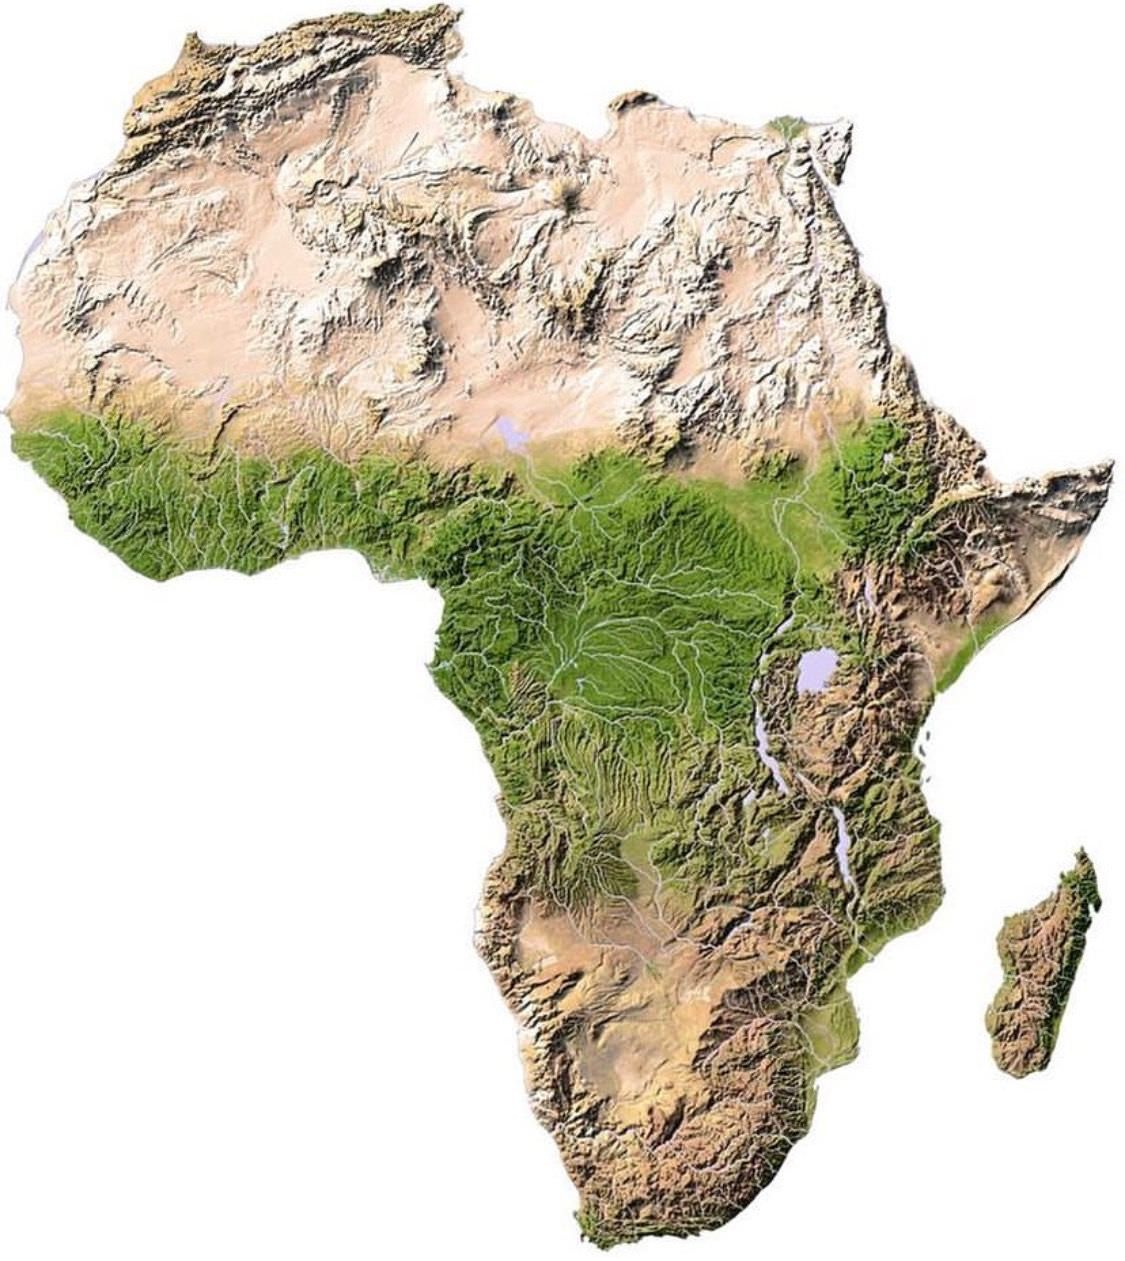 Topographic raised relief map of Africa | History | Africa map